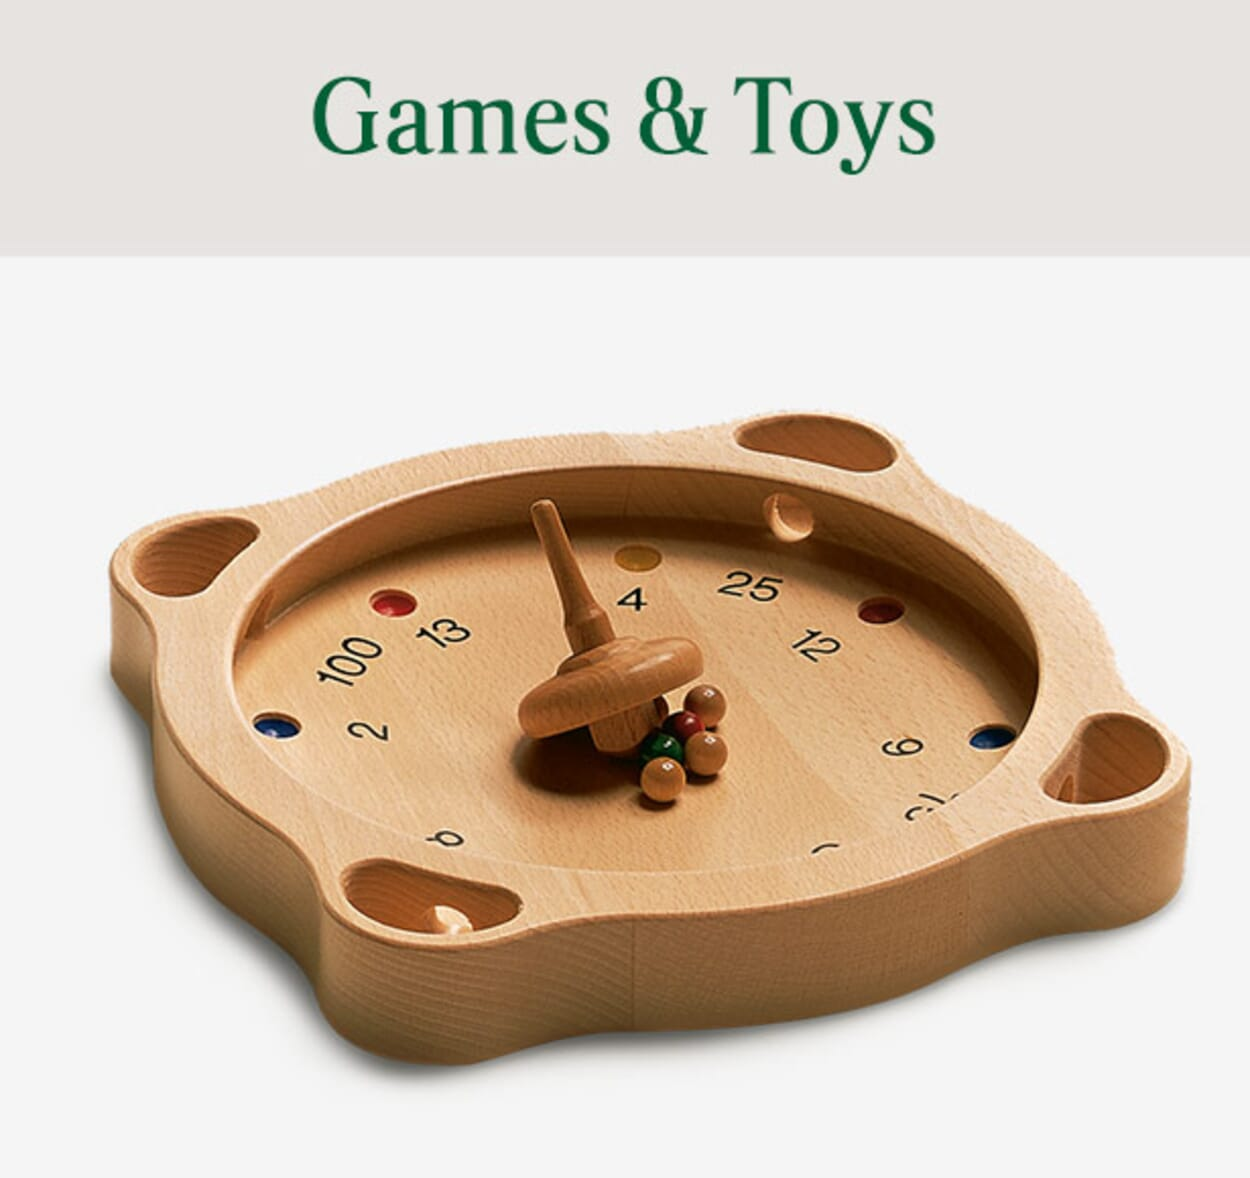 Games & Toys